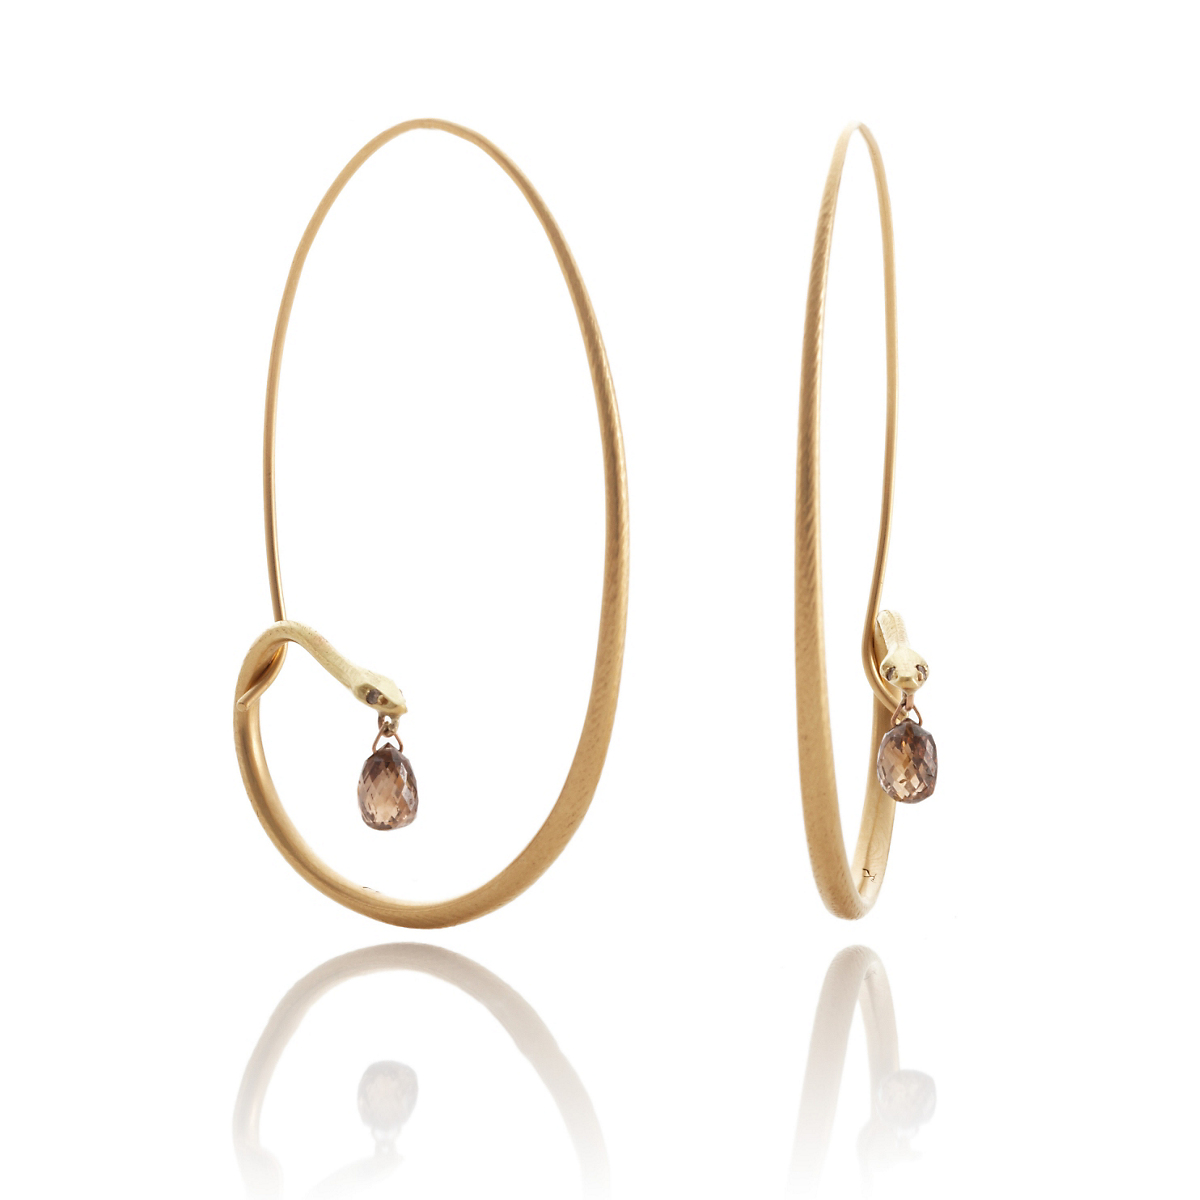 Gabriella Kiss Large Gold & Diamond Snake Hoop Earrings